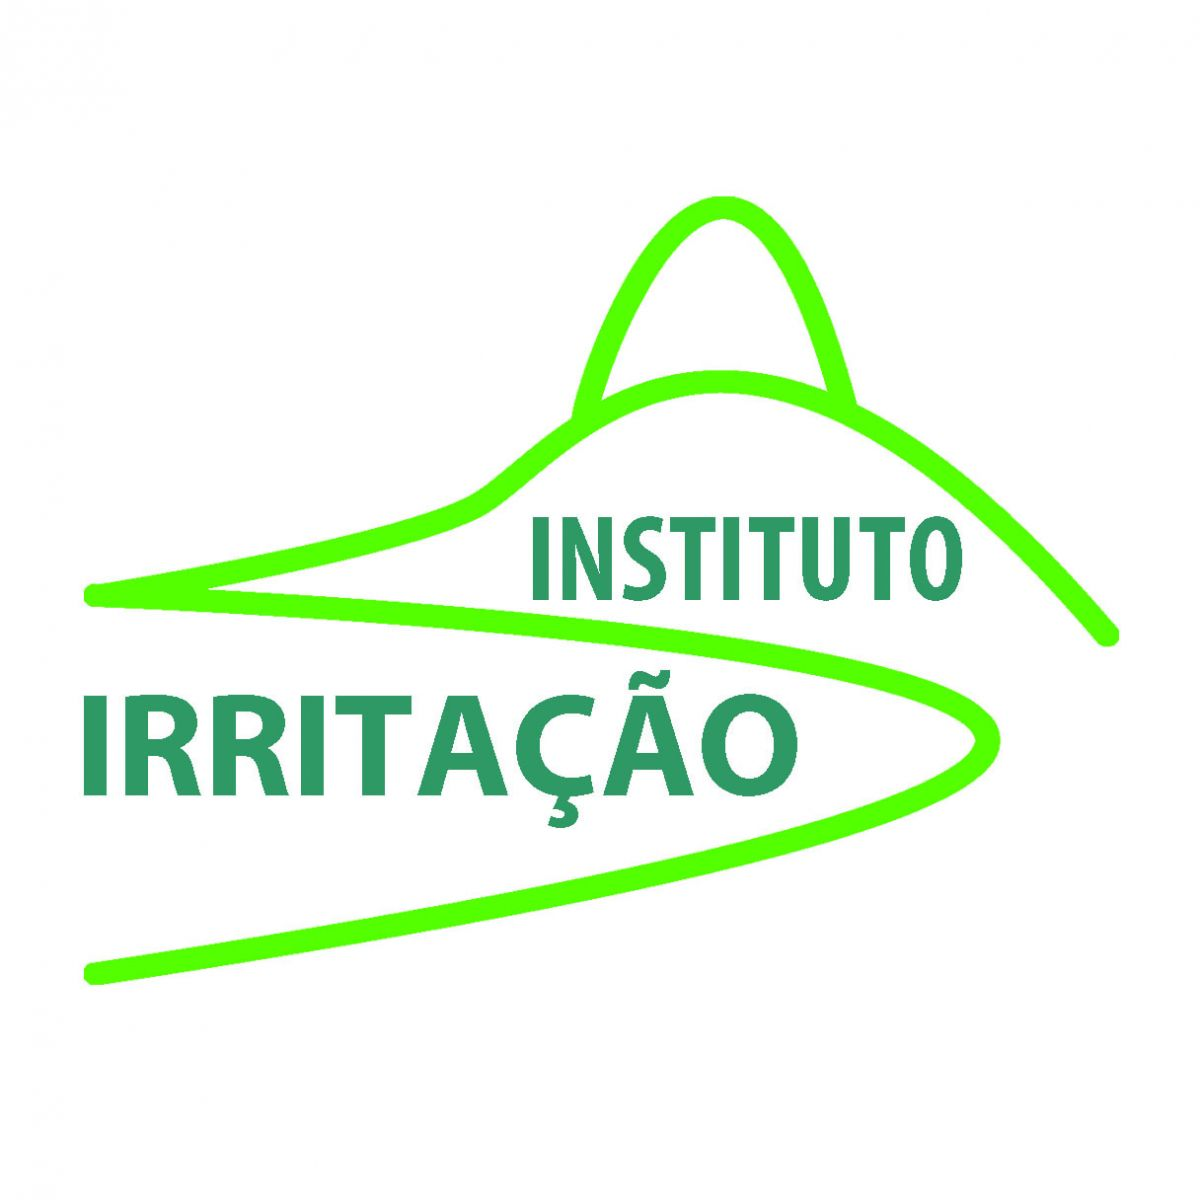 2 Instituto Irritacao